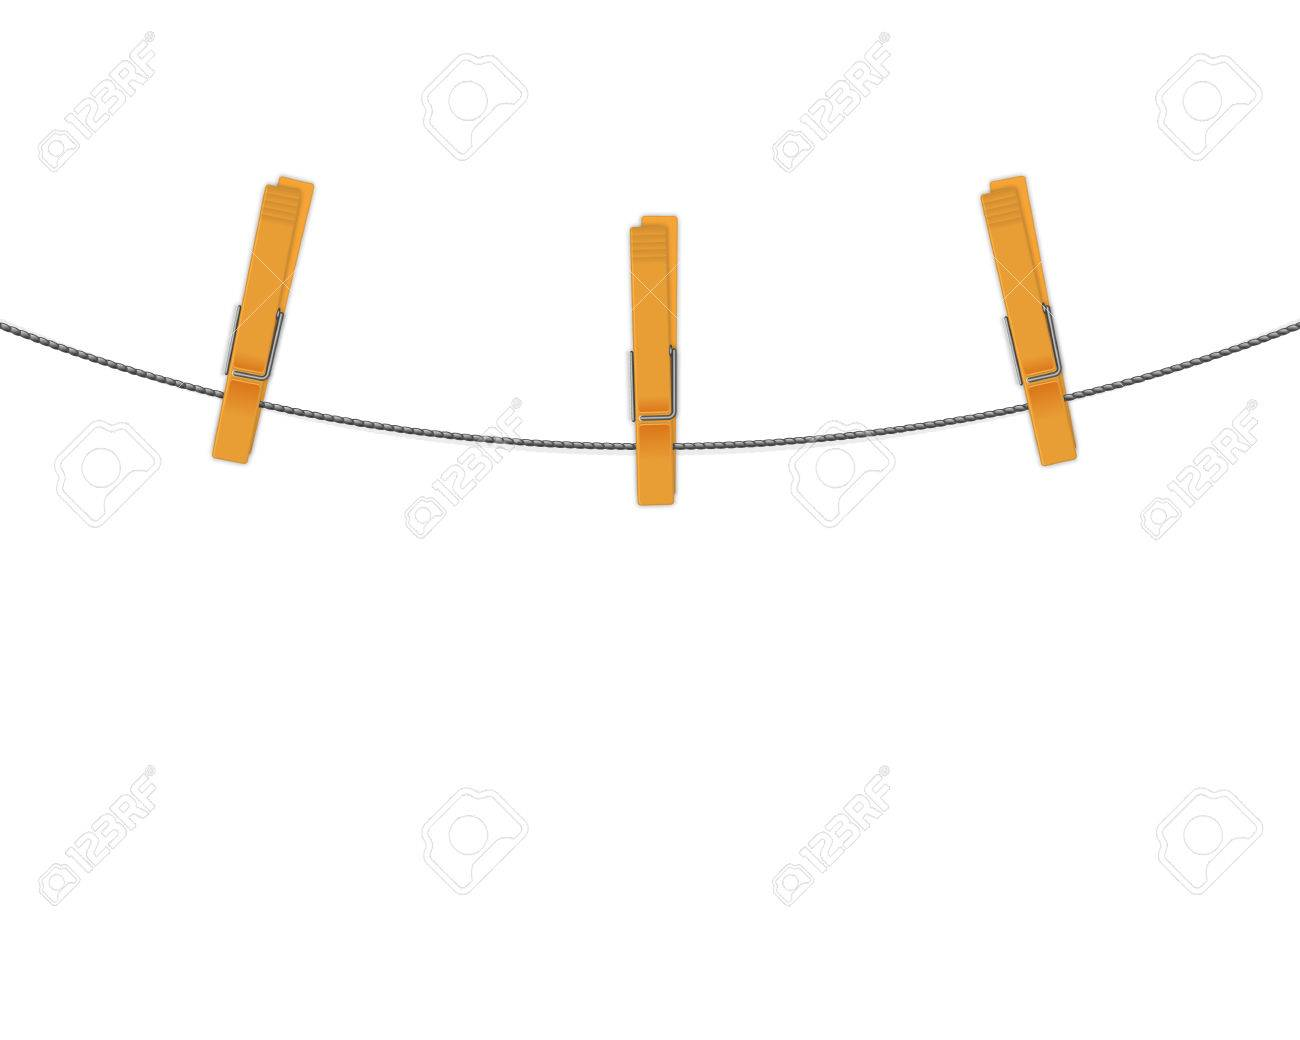 clothespins on rope background - 56639484